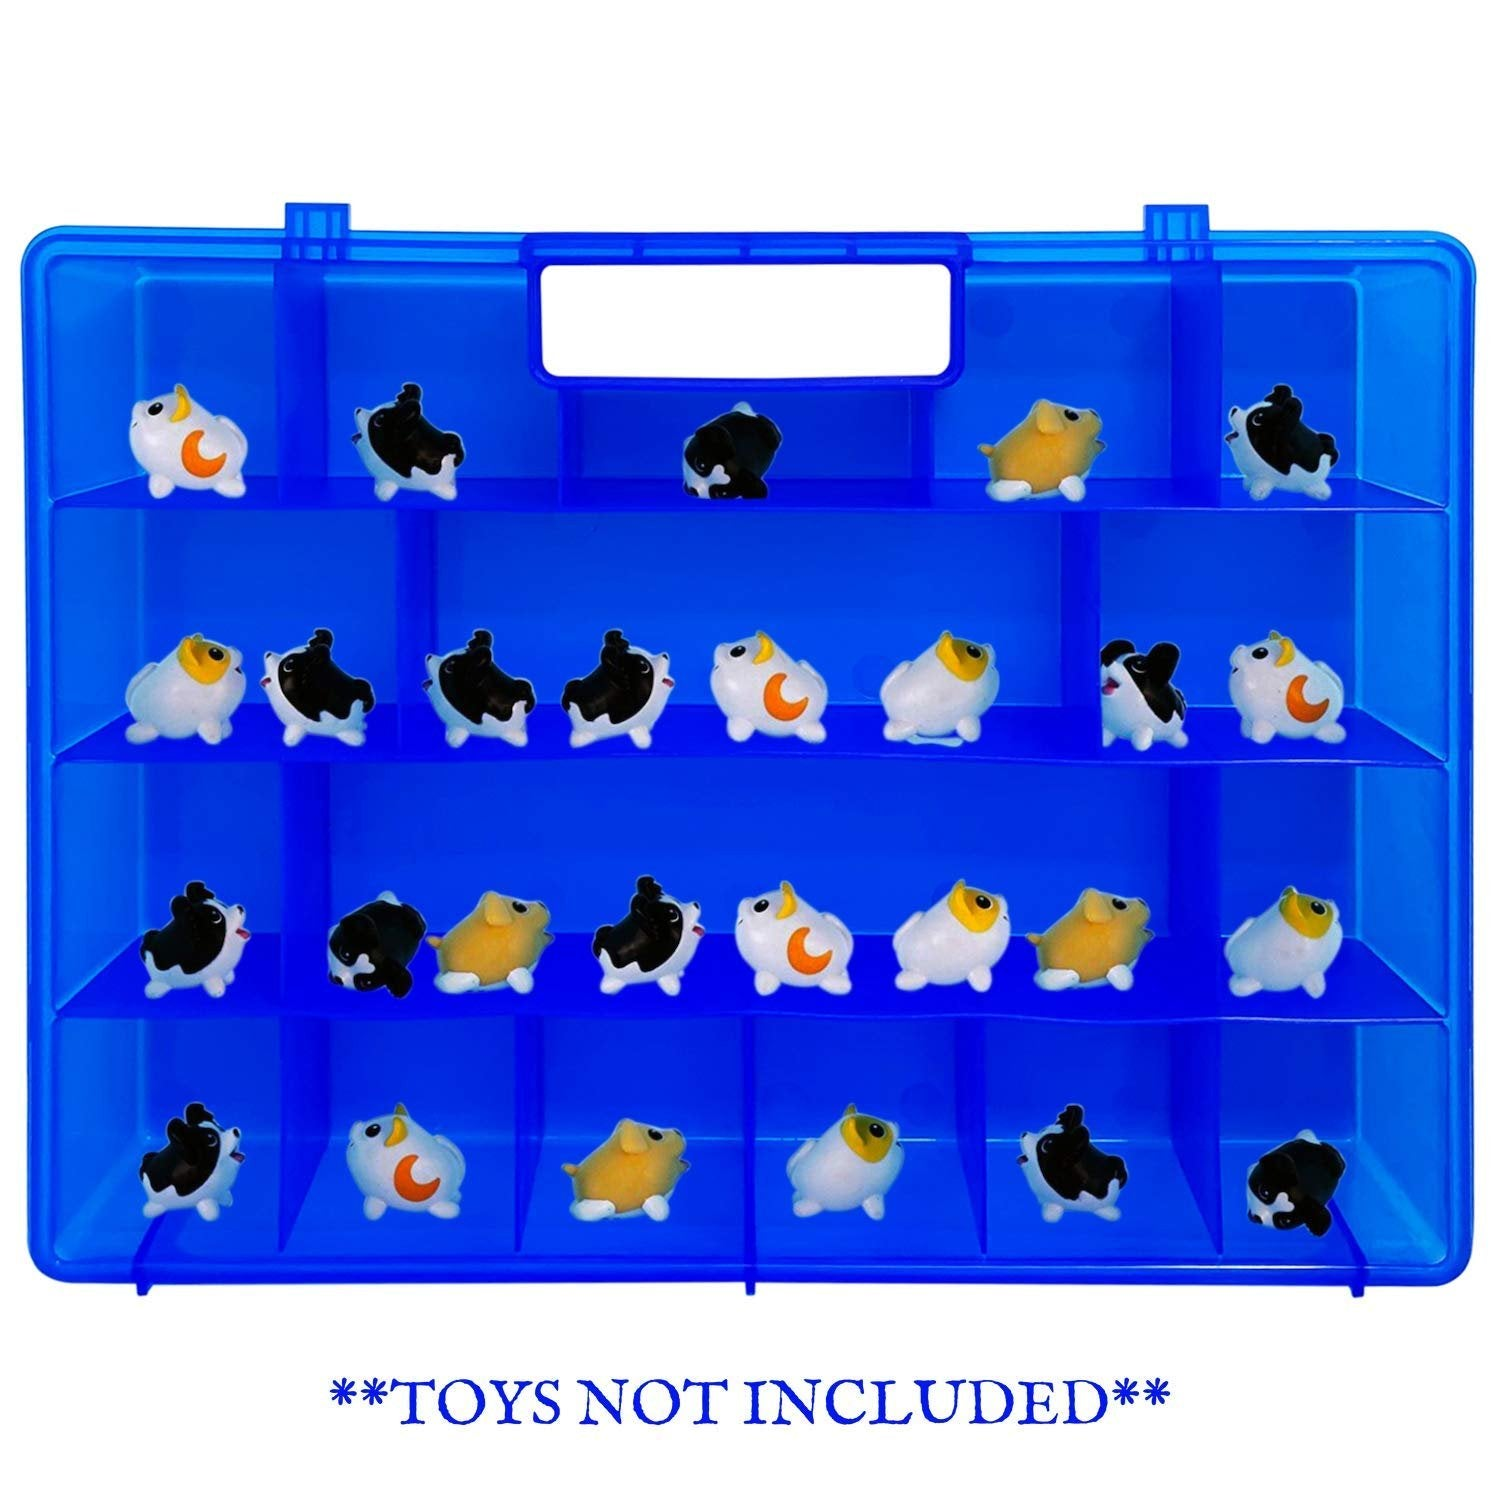 Life Made Better Protective, Stronger Blue Toy Storage Carrying Box. Figures Playset Organizer Compatible with Chubby Puppies, Accessories for Kids LMB